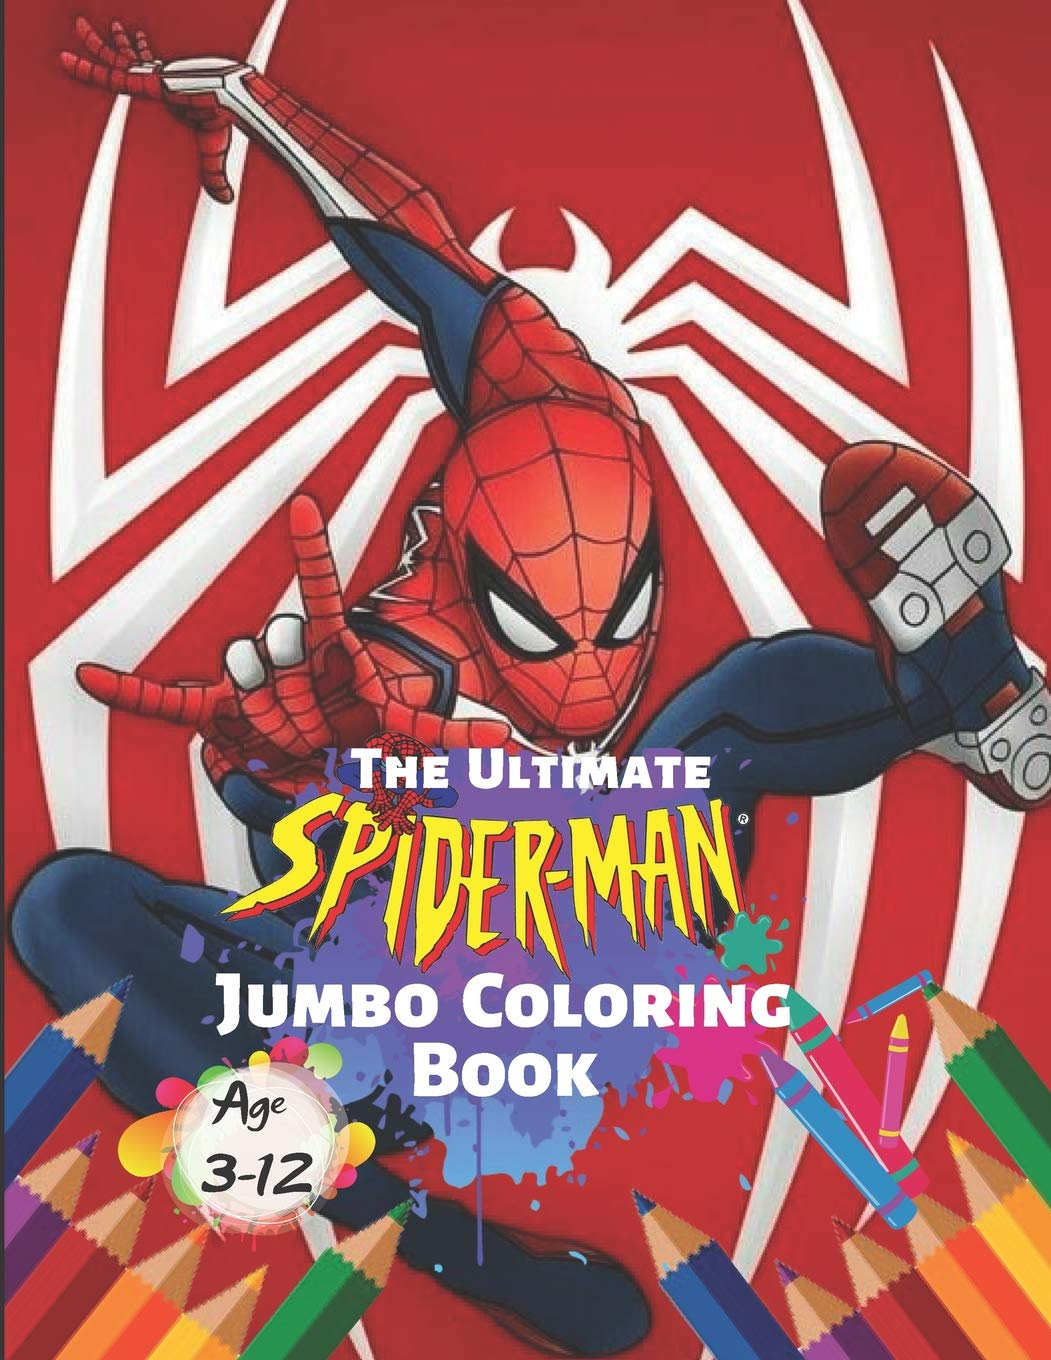 - The Ultimate Spider-man Jumbo Coloring Book Age 3-12: Ultimate